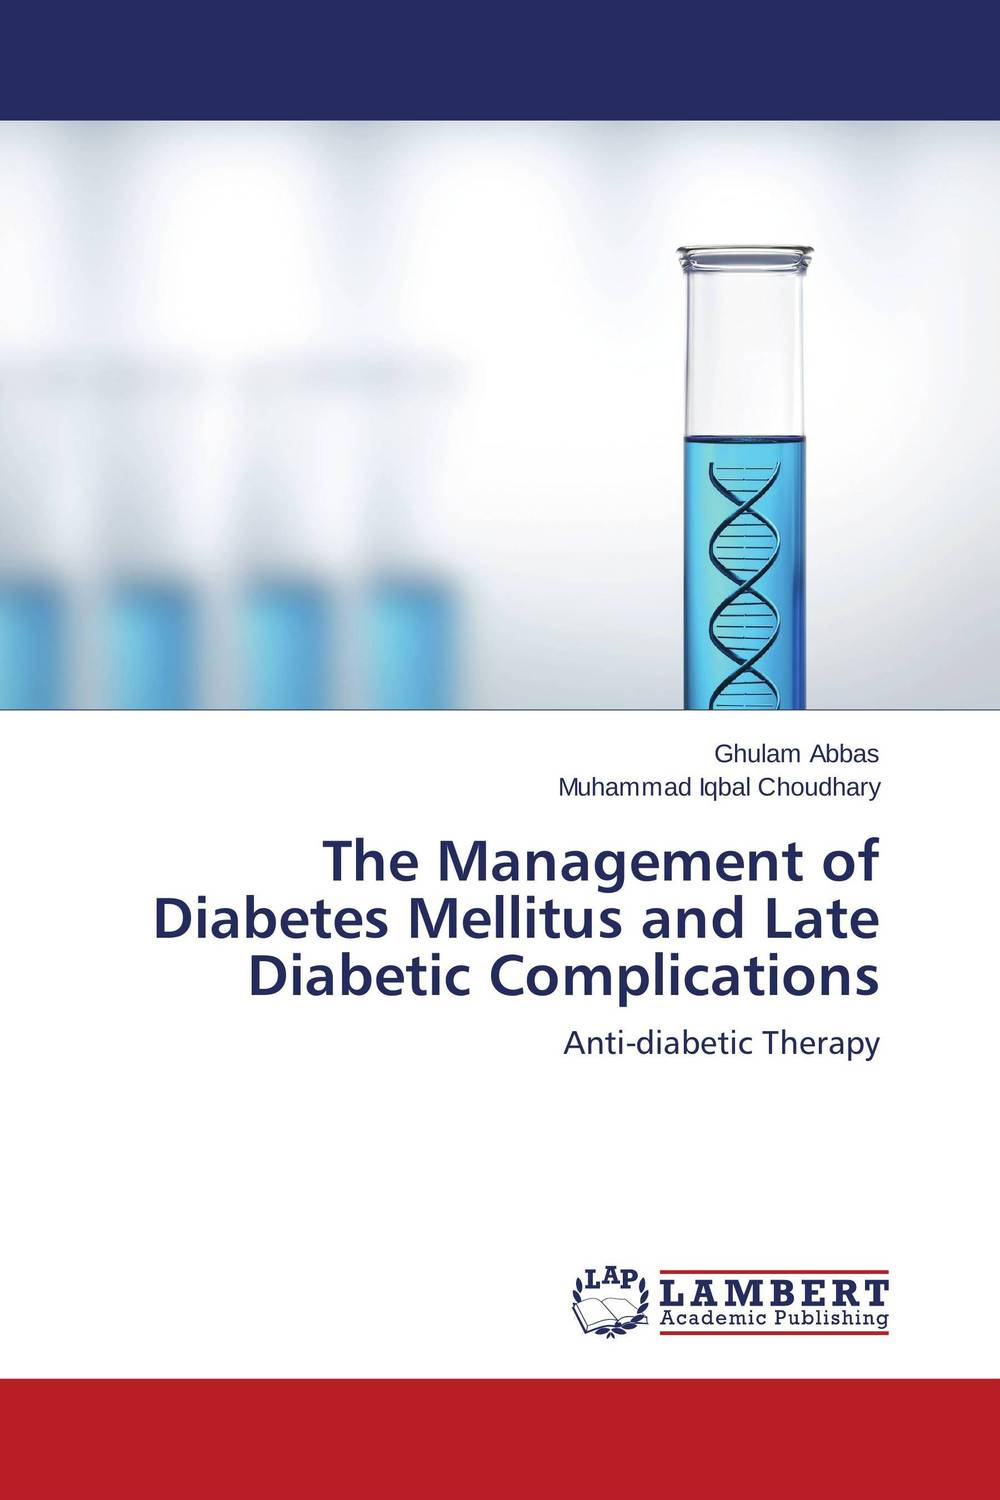 The Management of Diabetes Mellitus and Late Diabetic Complications effect of cyclooxygenase inhibitors on diabetic complications